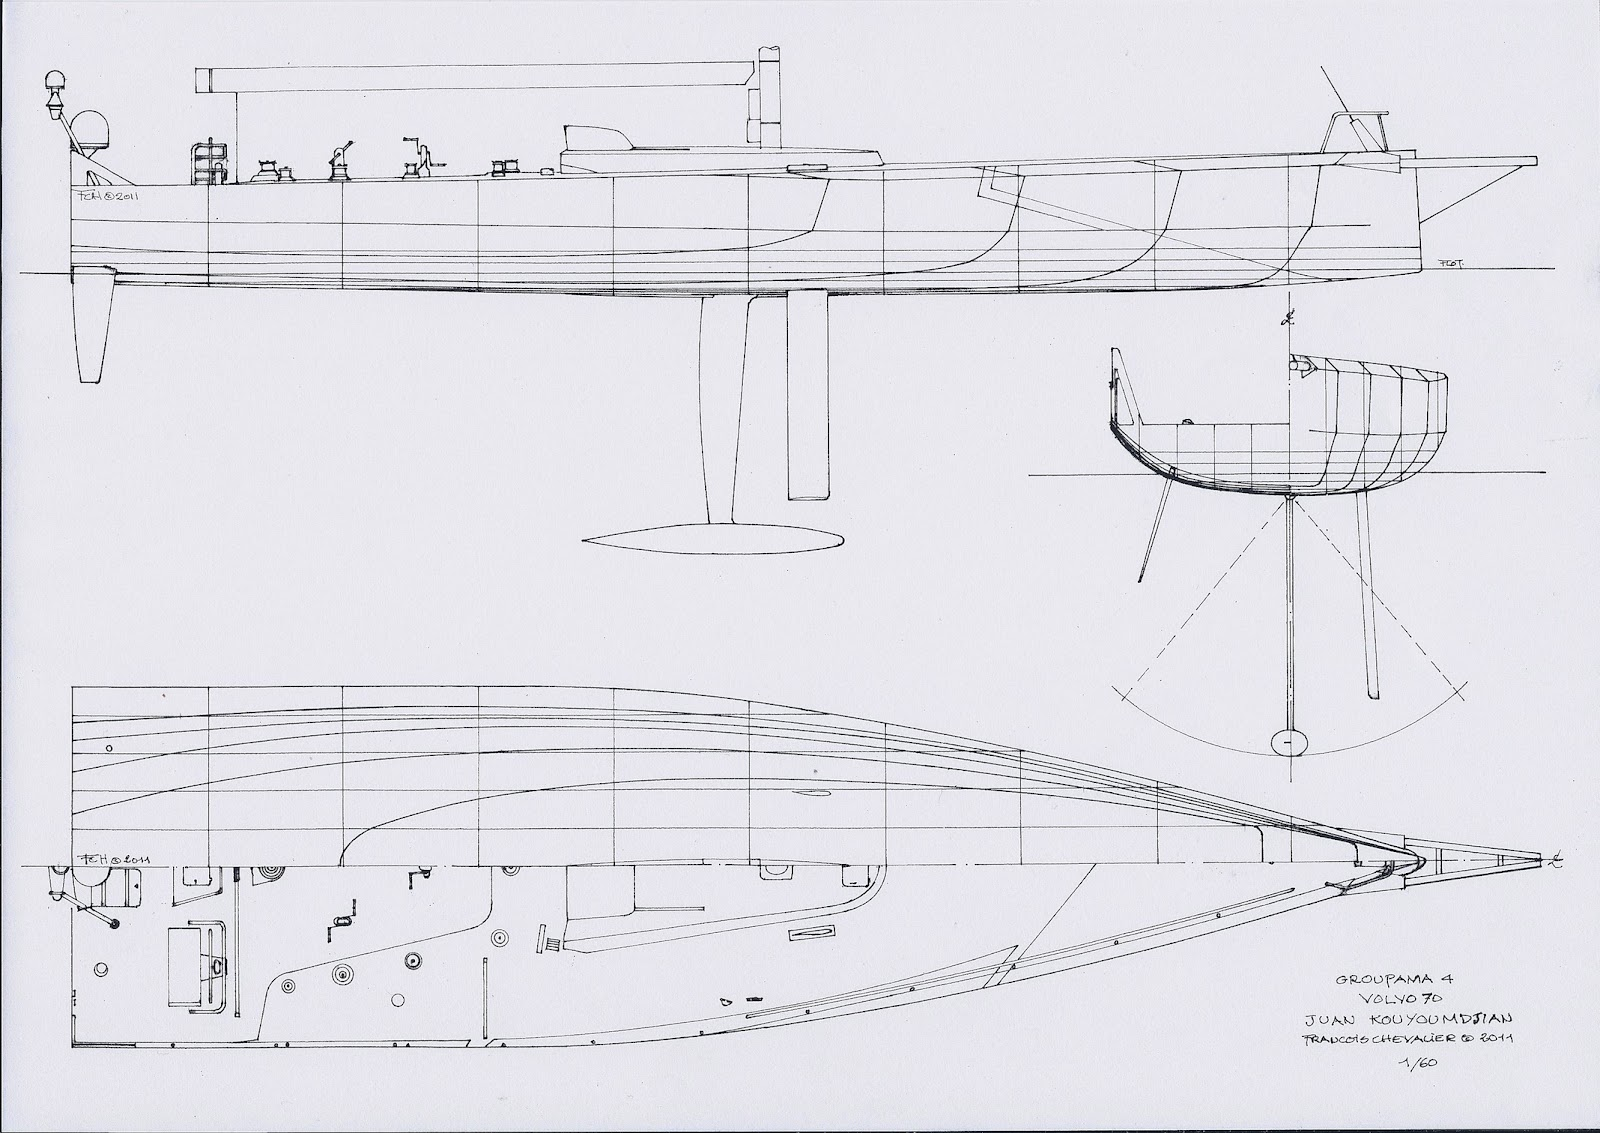 medium resolution of chevalier taglang volvo ocean race drawings and design evolution updated 2014 volvo one design